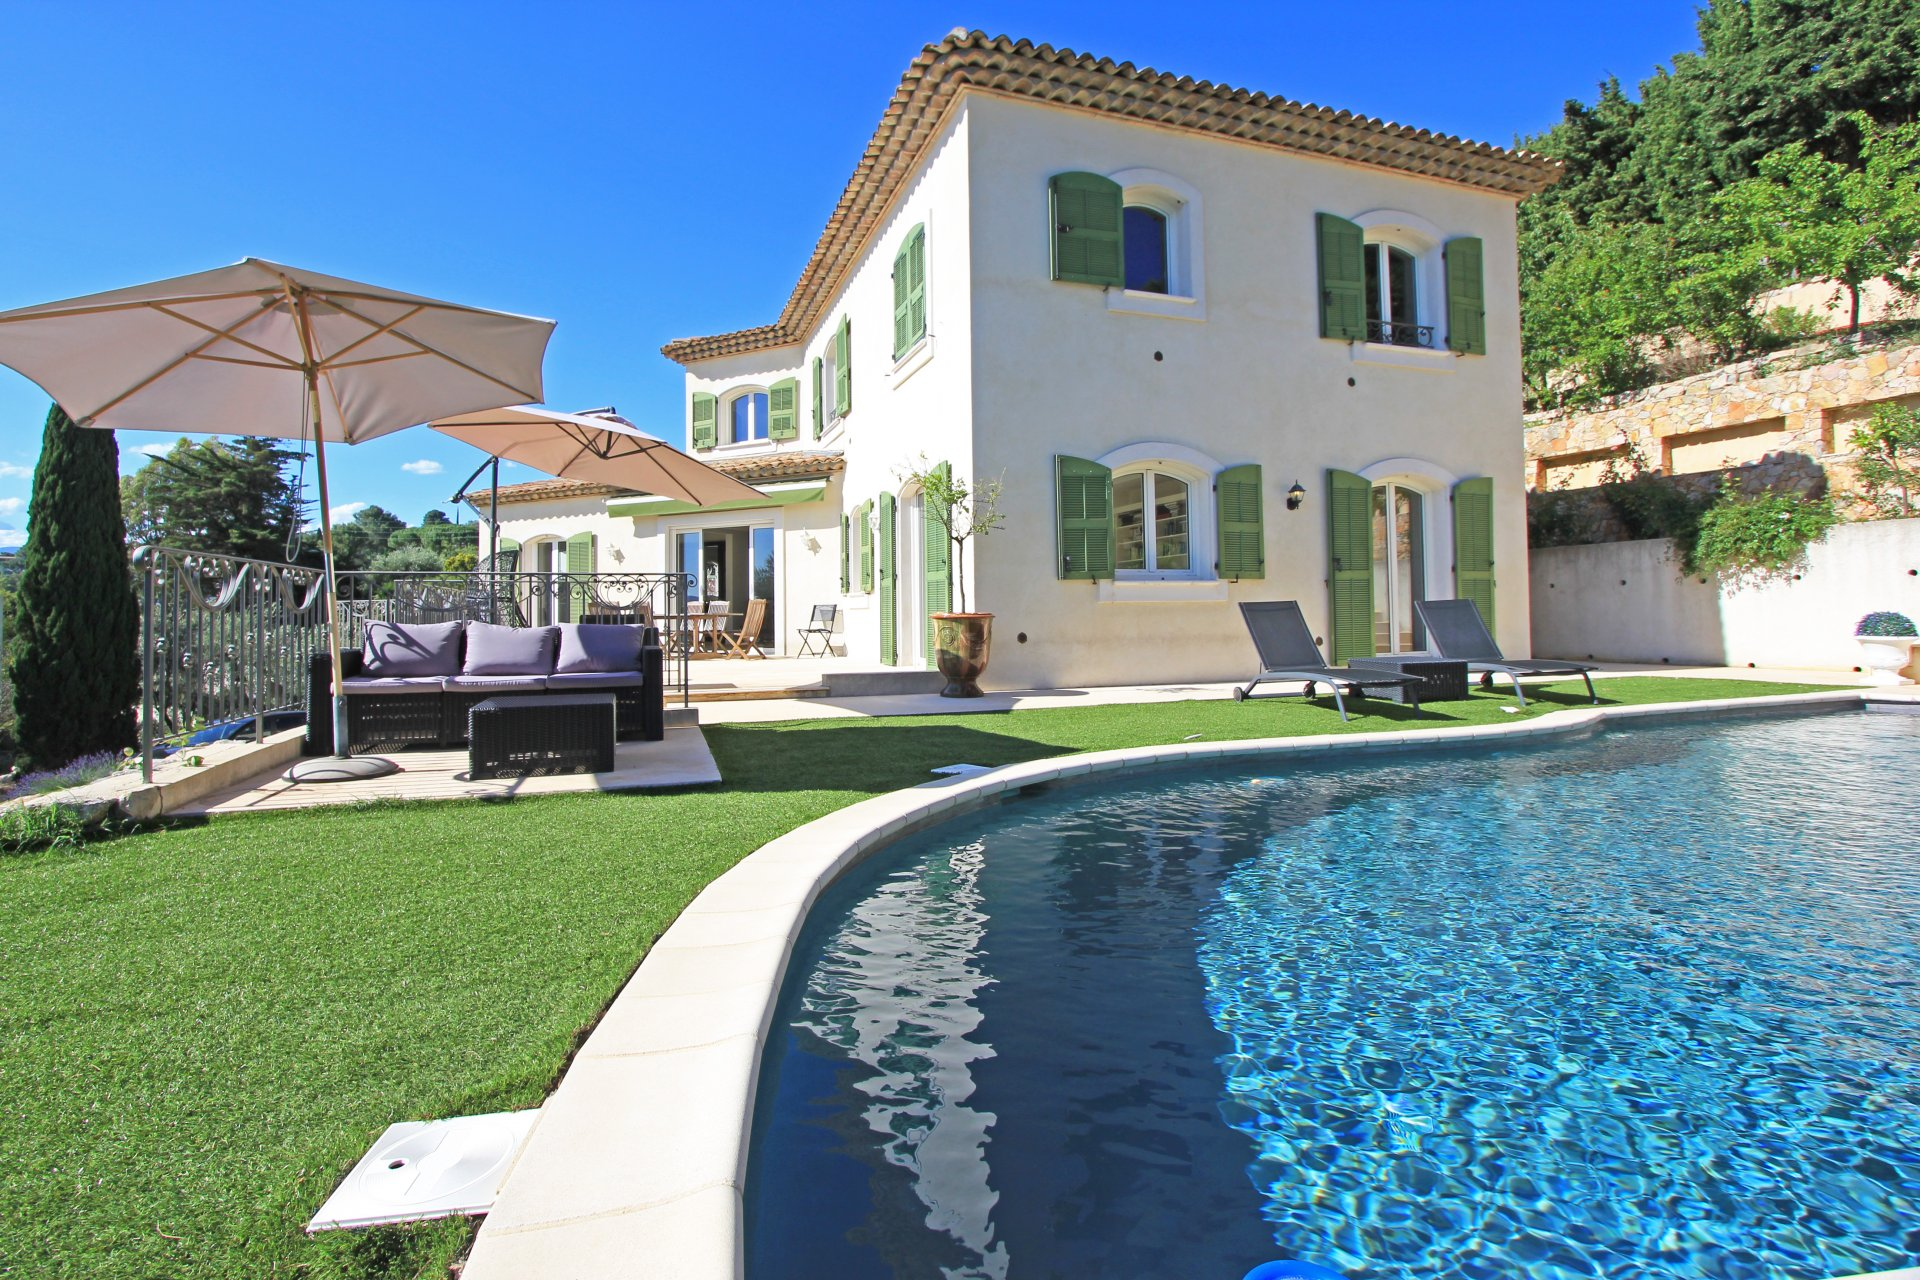 Beautiful villa with swimming pool for sale in Le Cannet